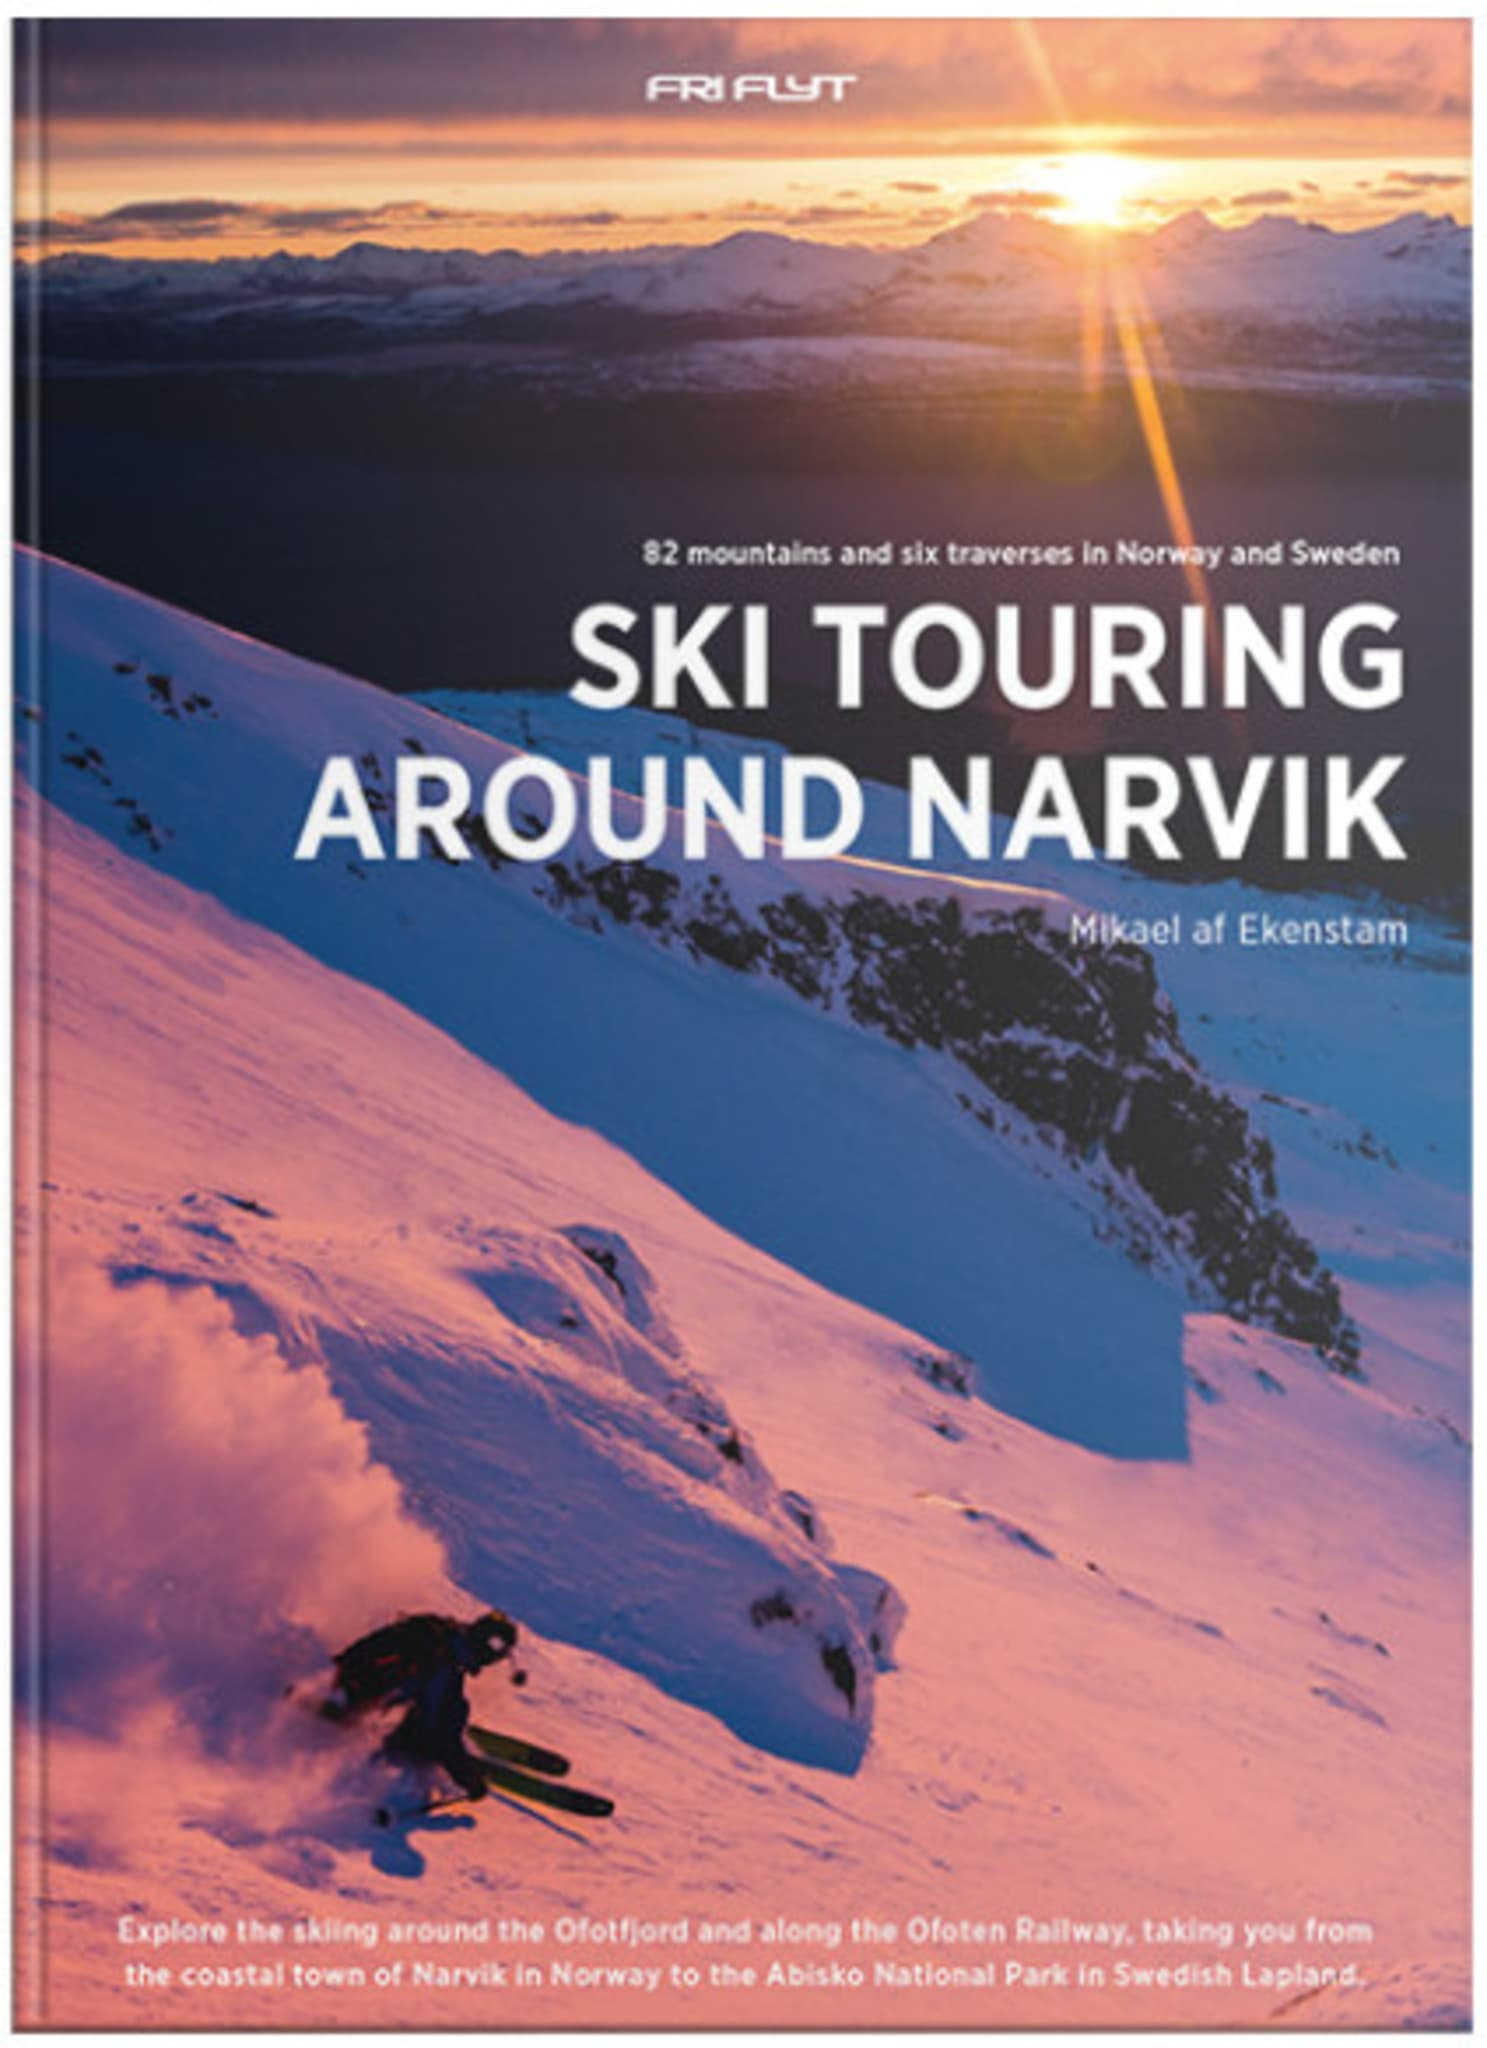 Ski touring around Narvik